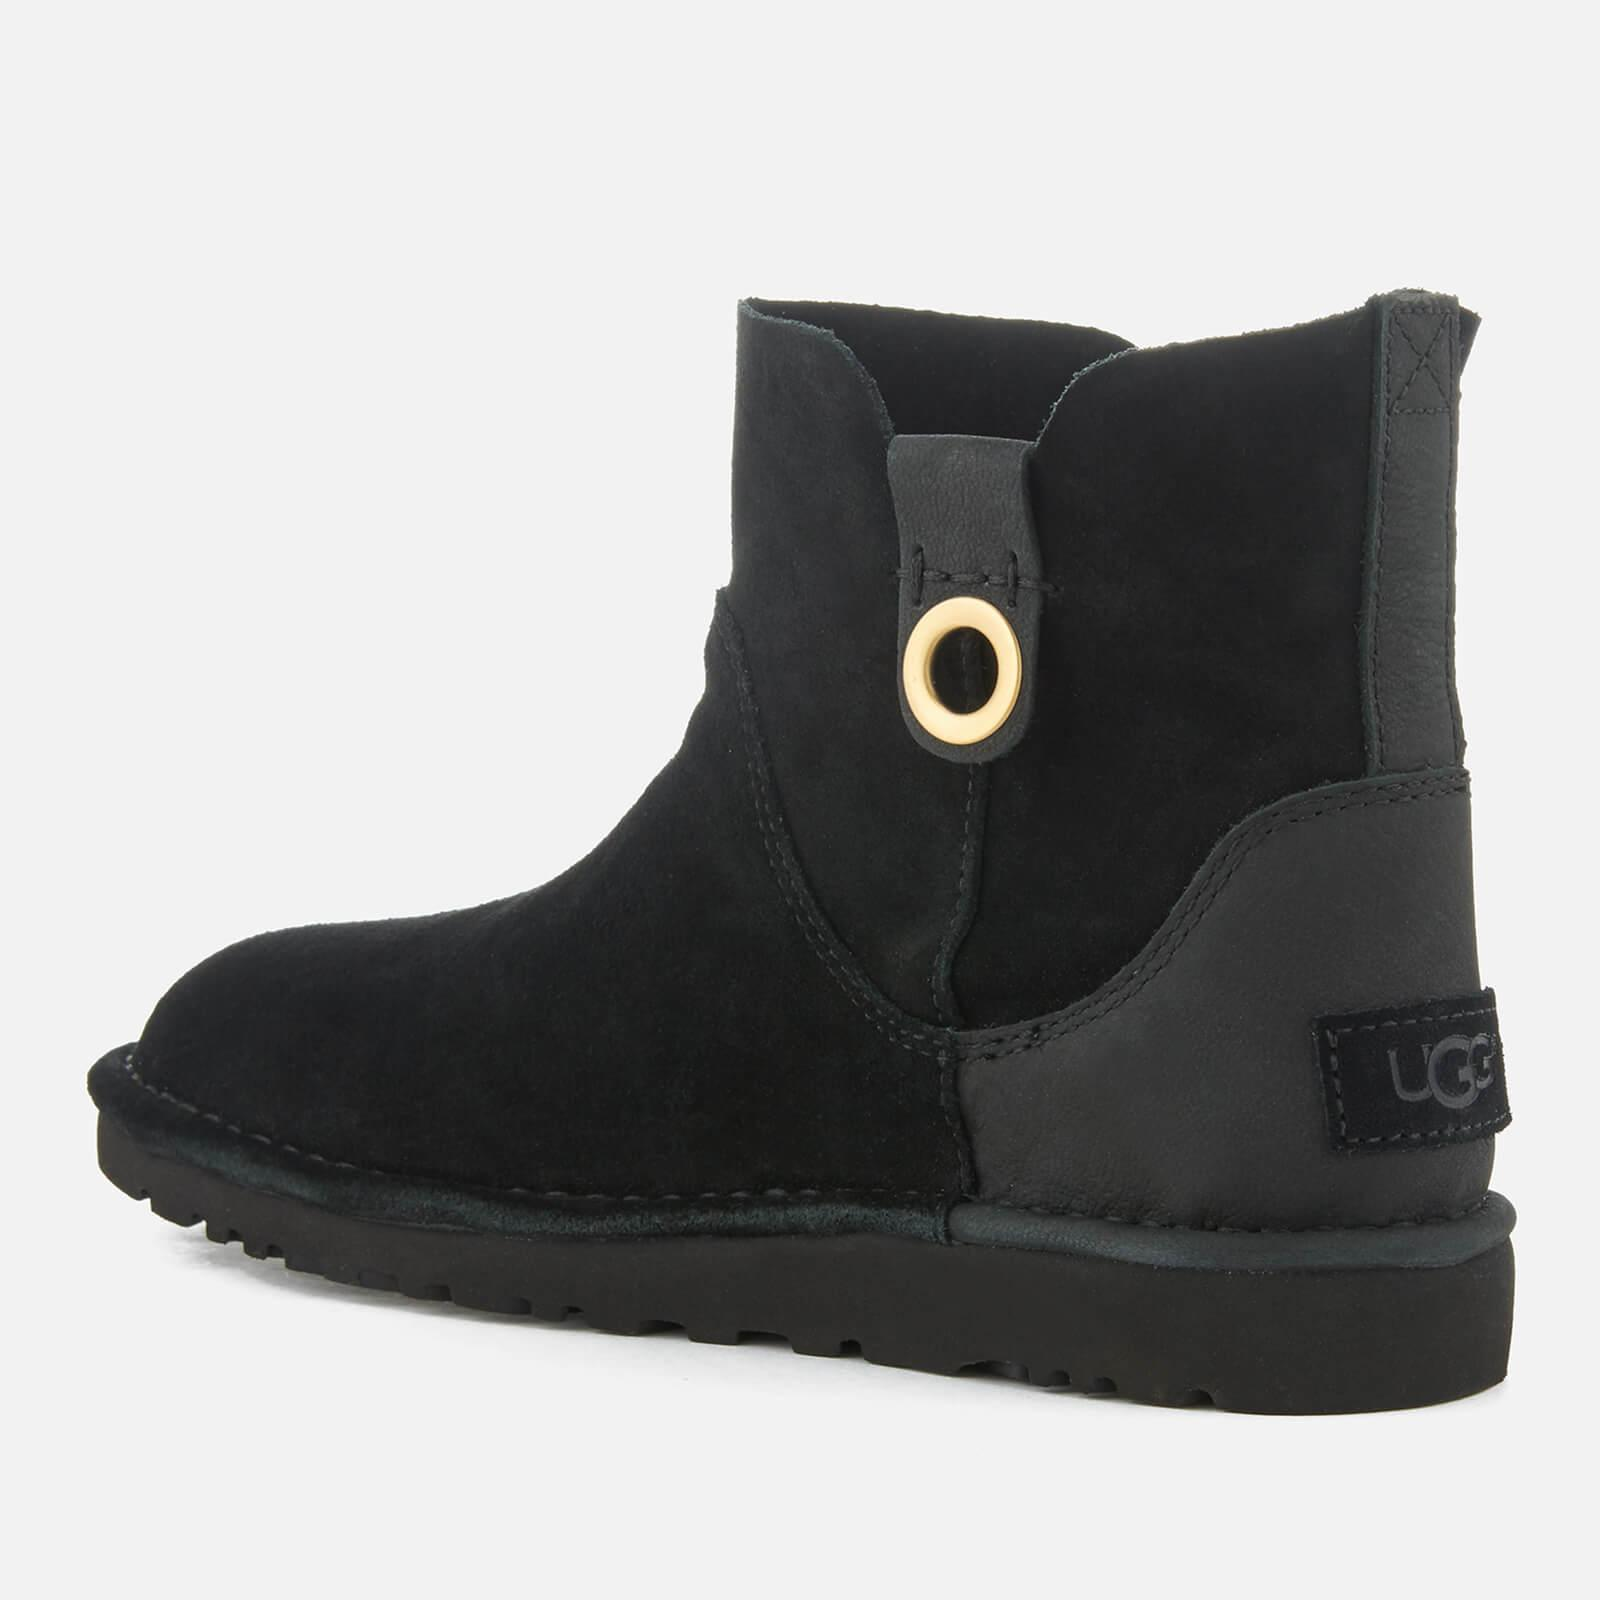 ugg gib ankle boots off 59% - www